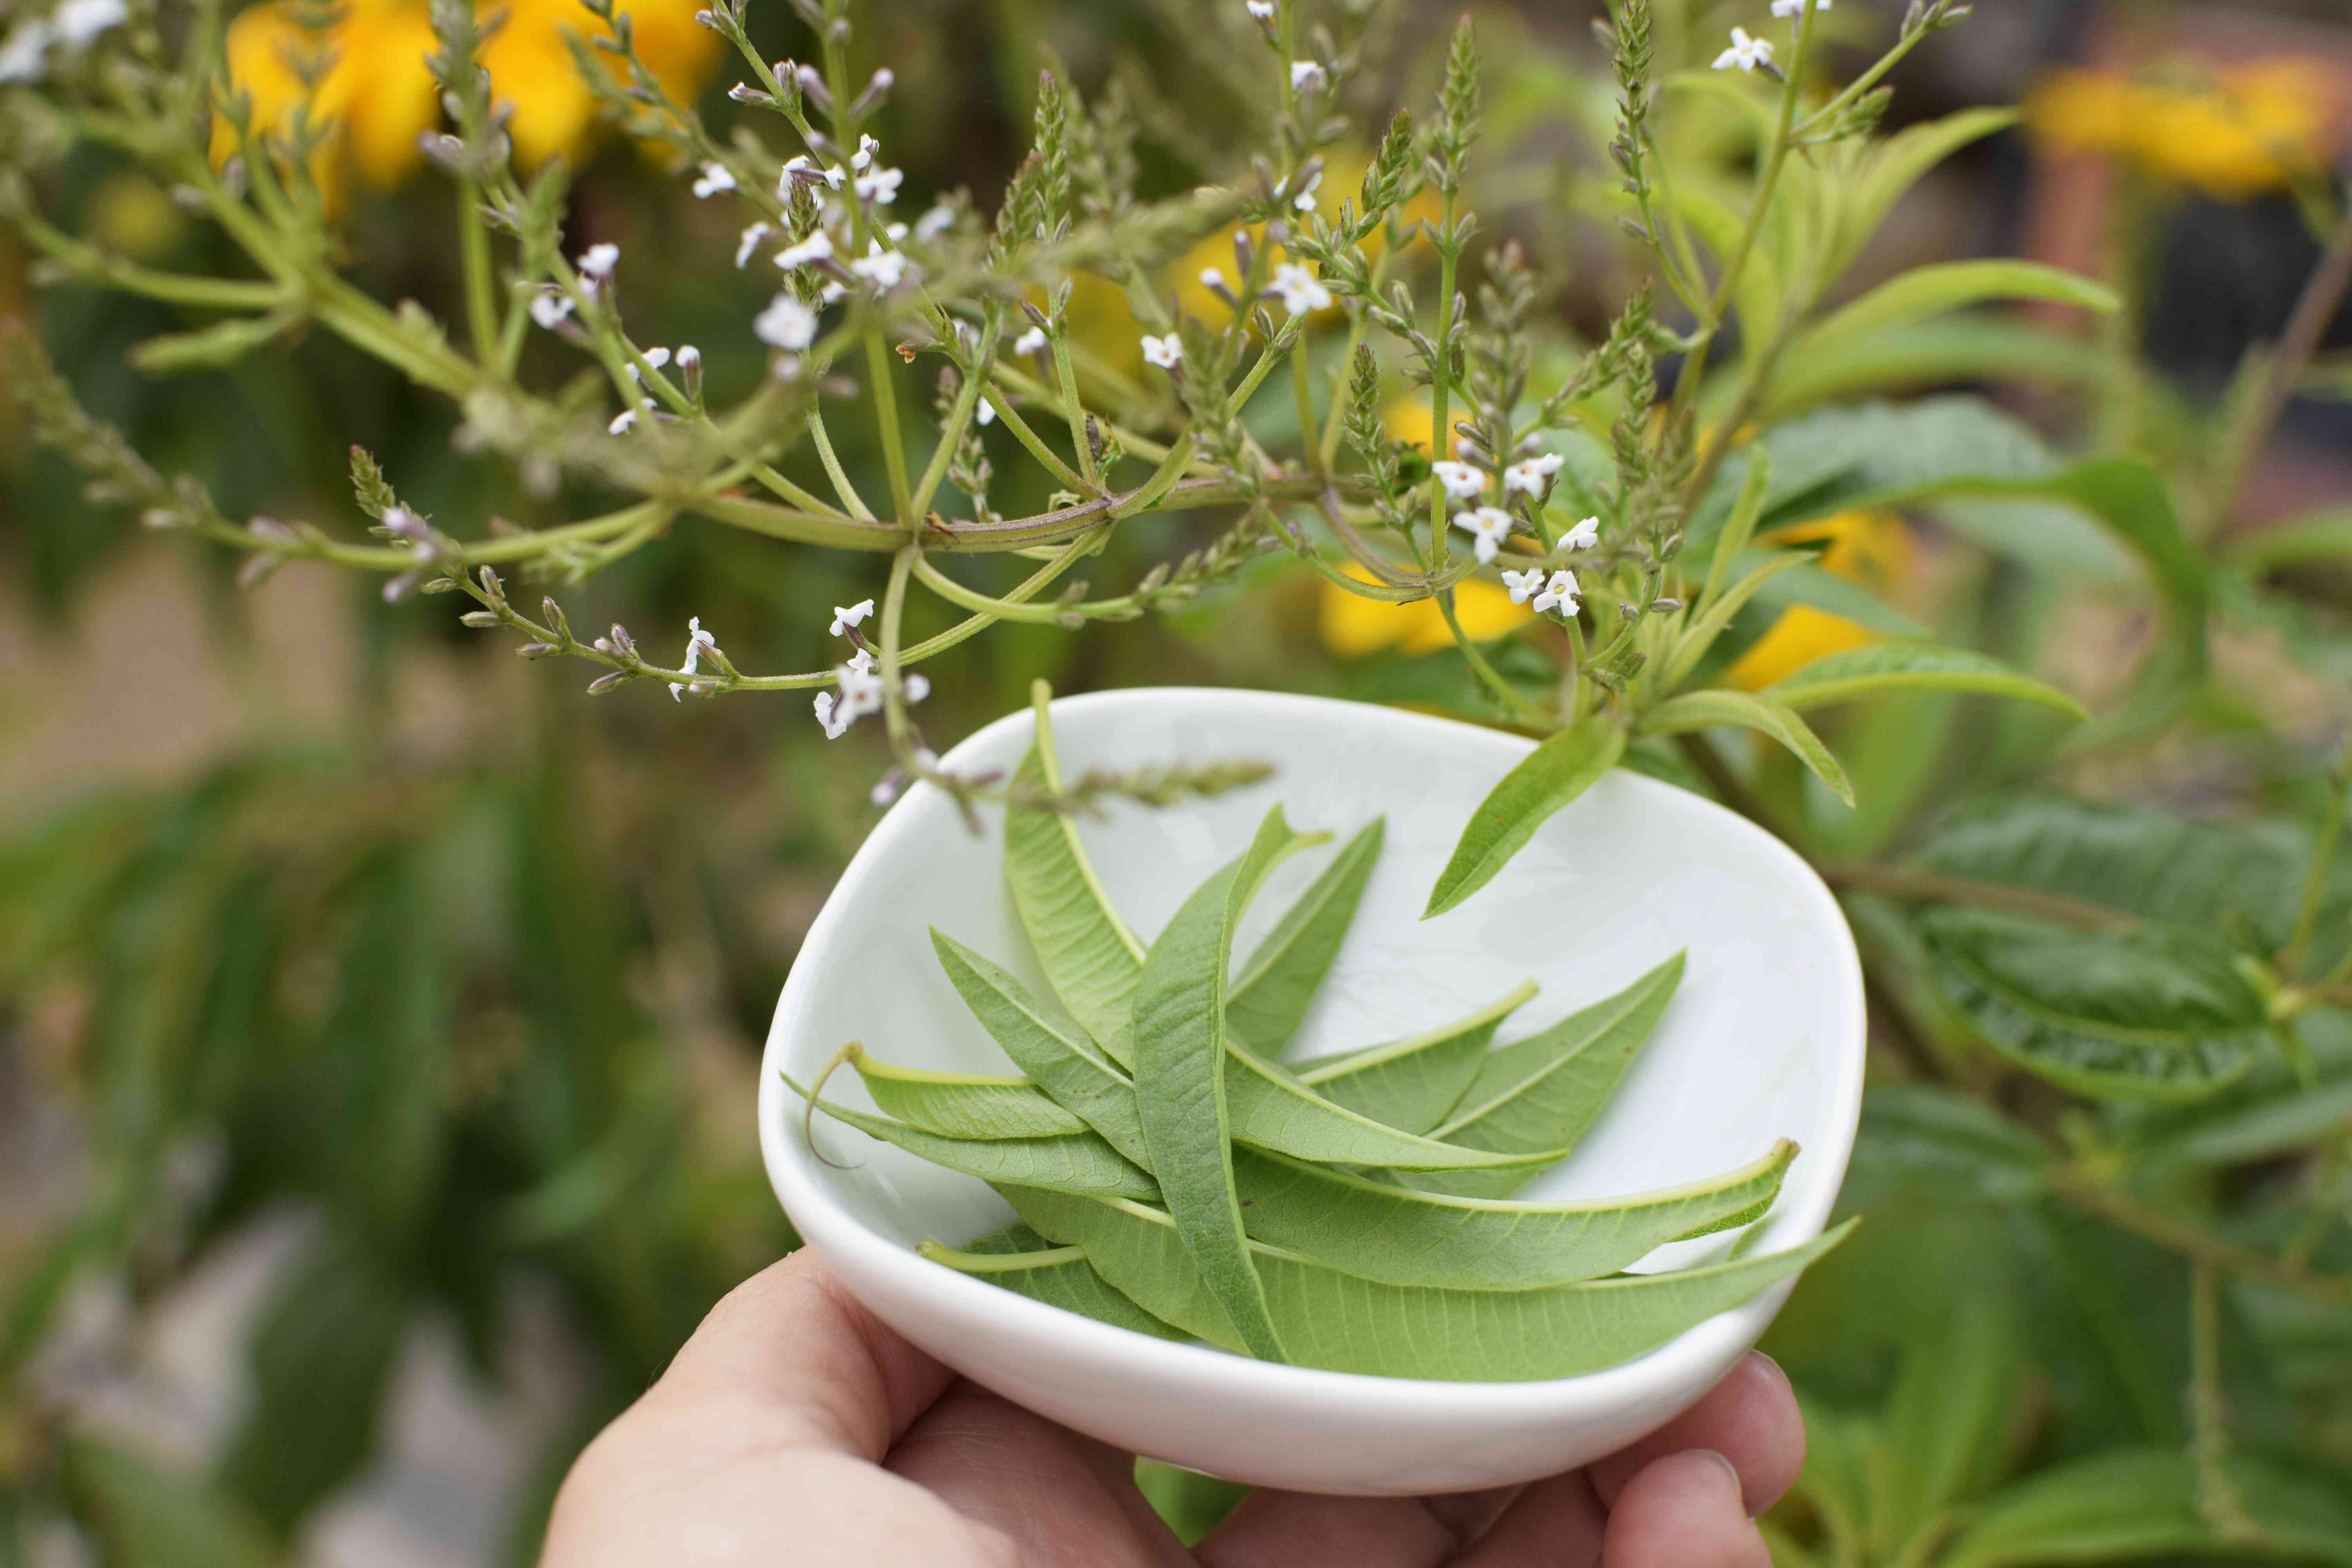 Lemon verbena plant stems with small white flowers over white bowl of picked leaves